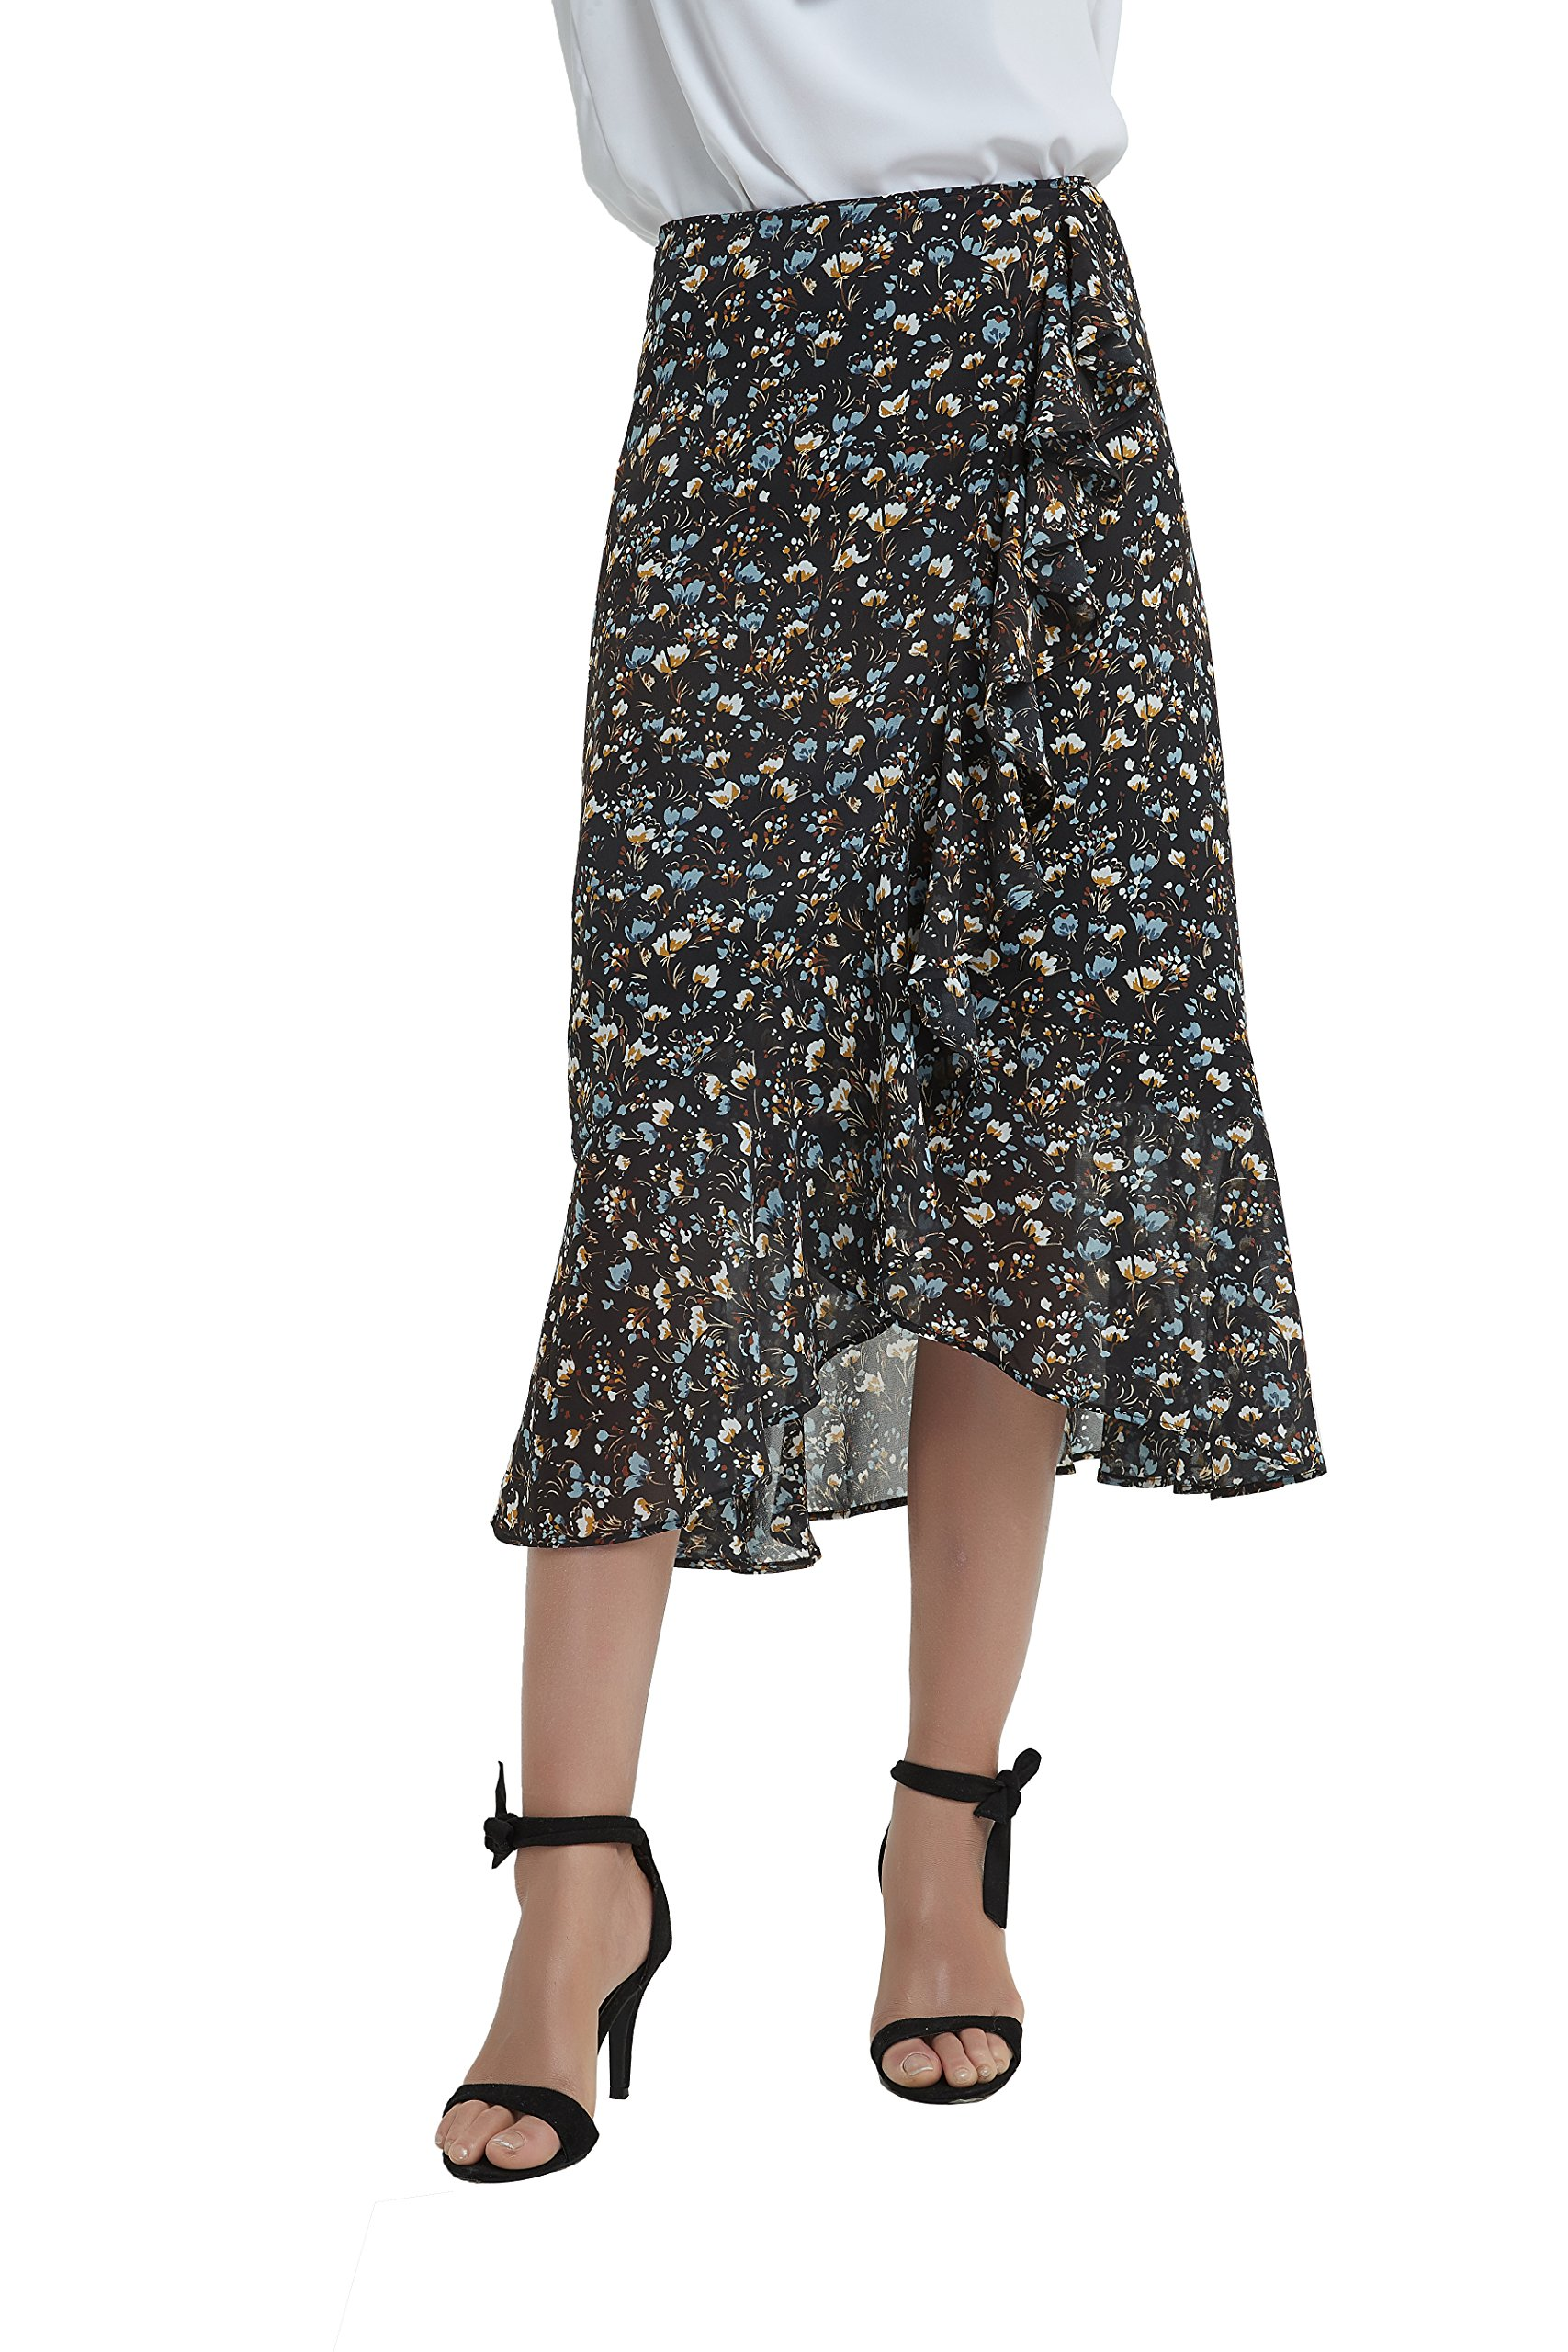 Tronjori Womens A Line Floral Print Midi Skirt with Ruffle on The Front (M, Black sml Flower)